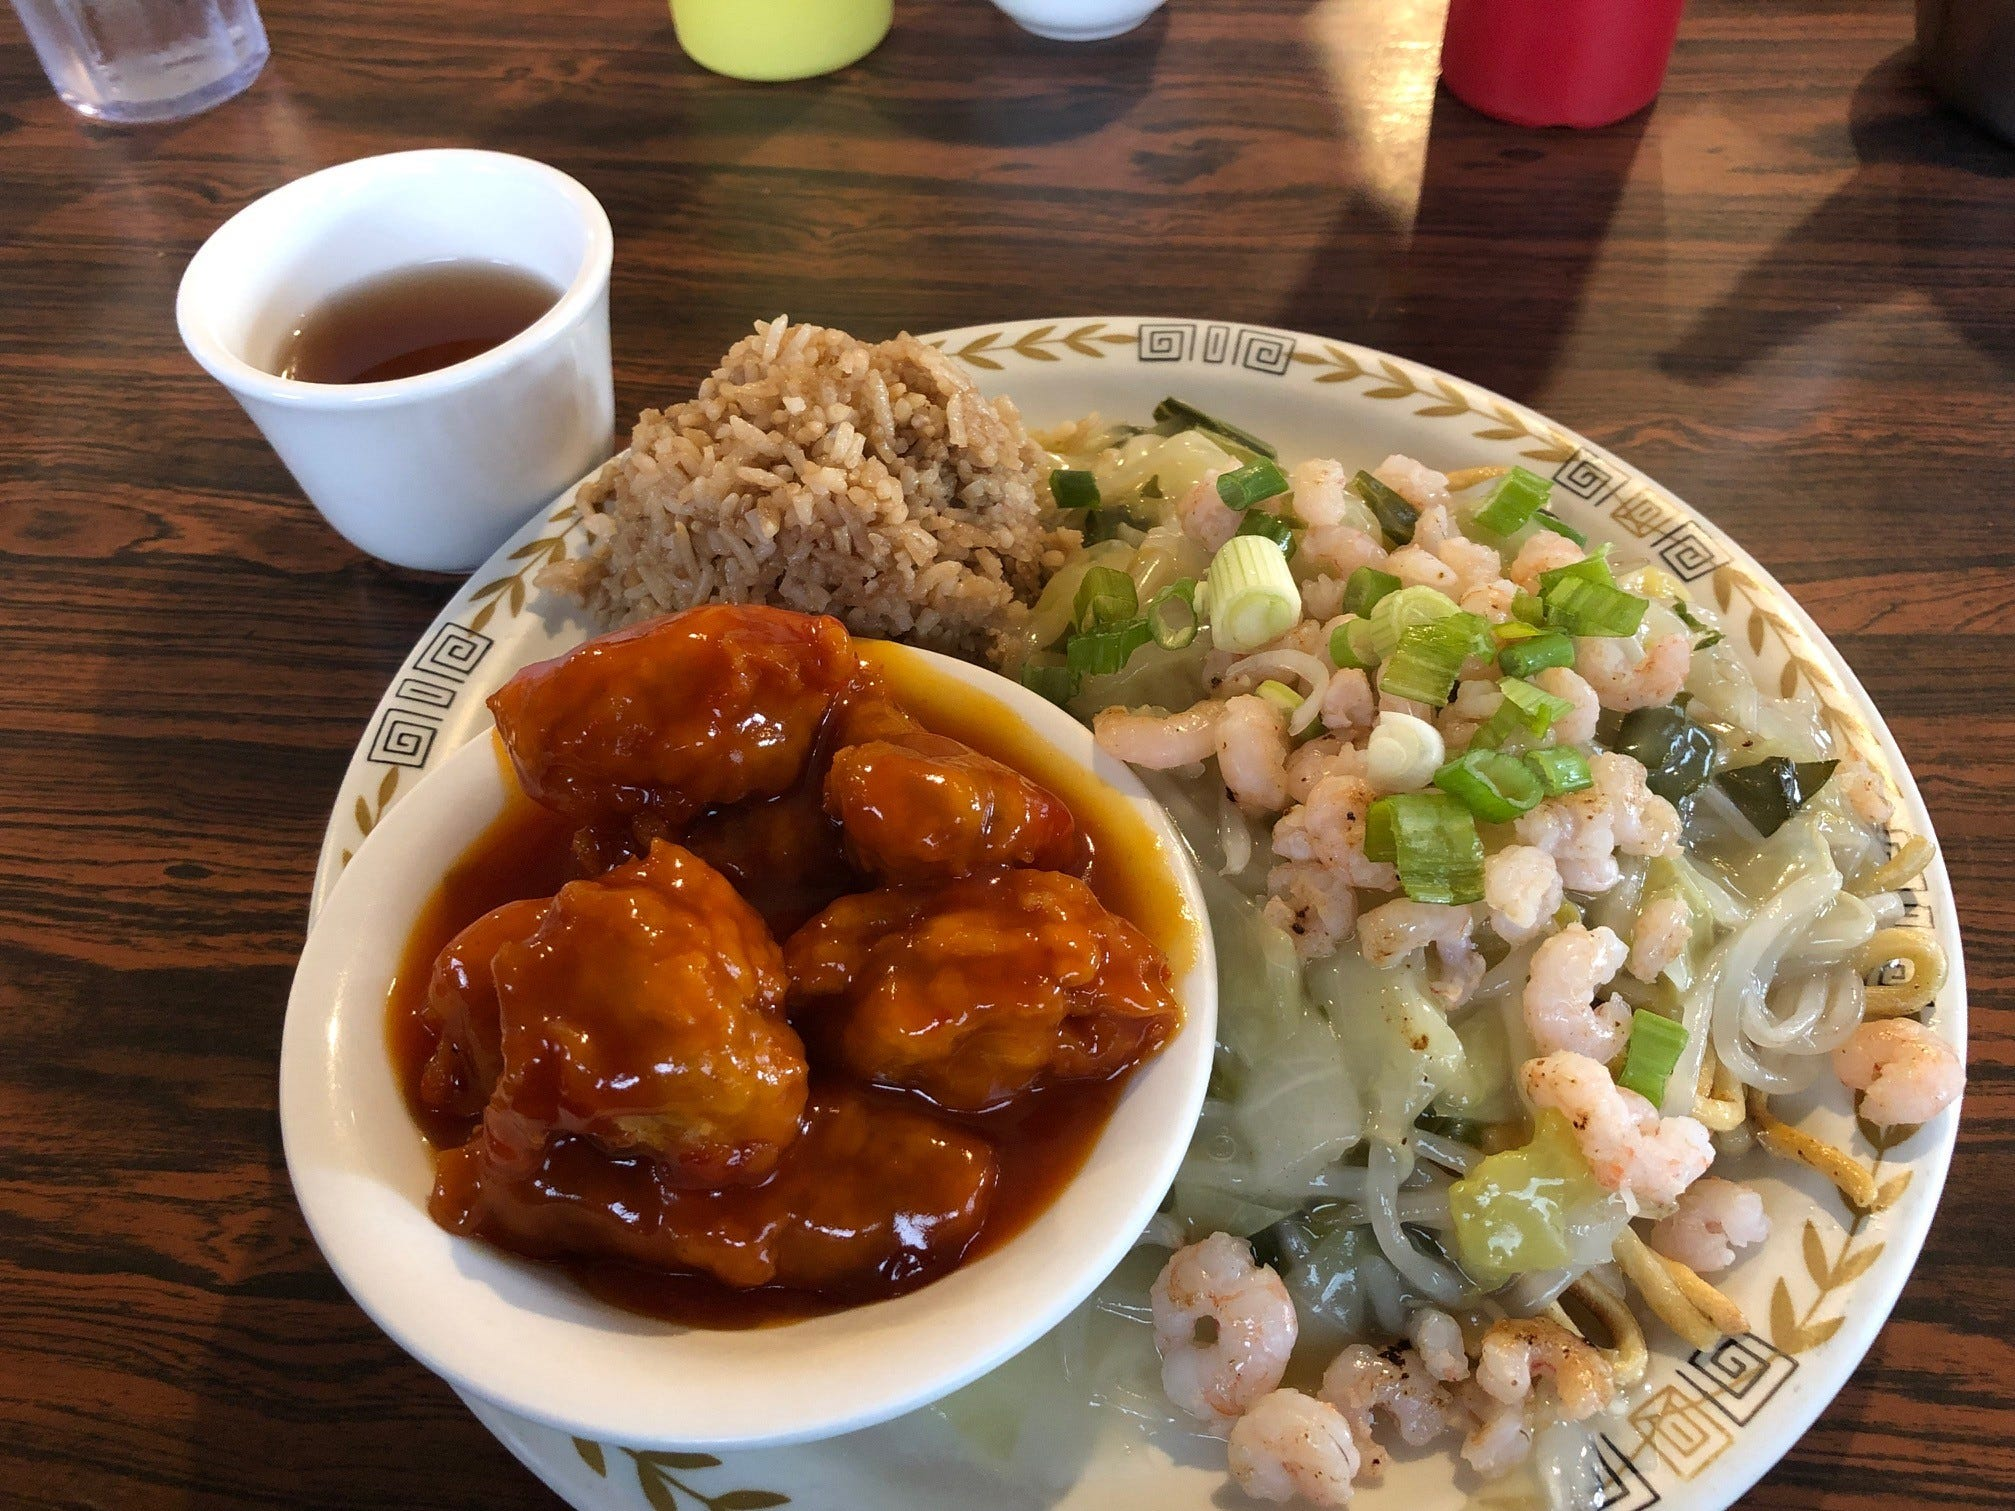 The Number 3 lunch special with sweet and sour pork.